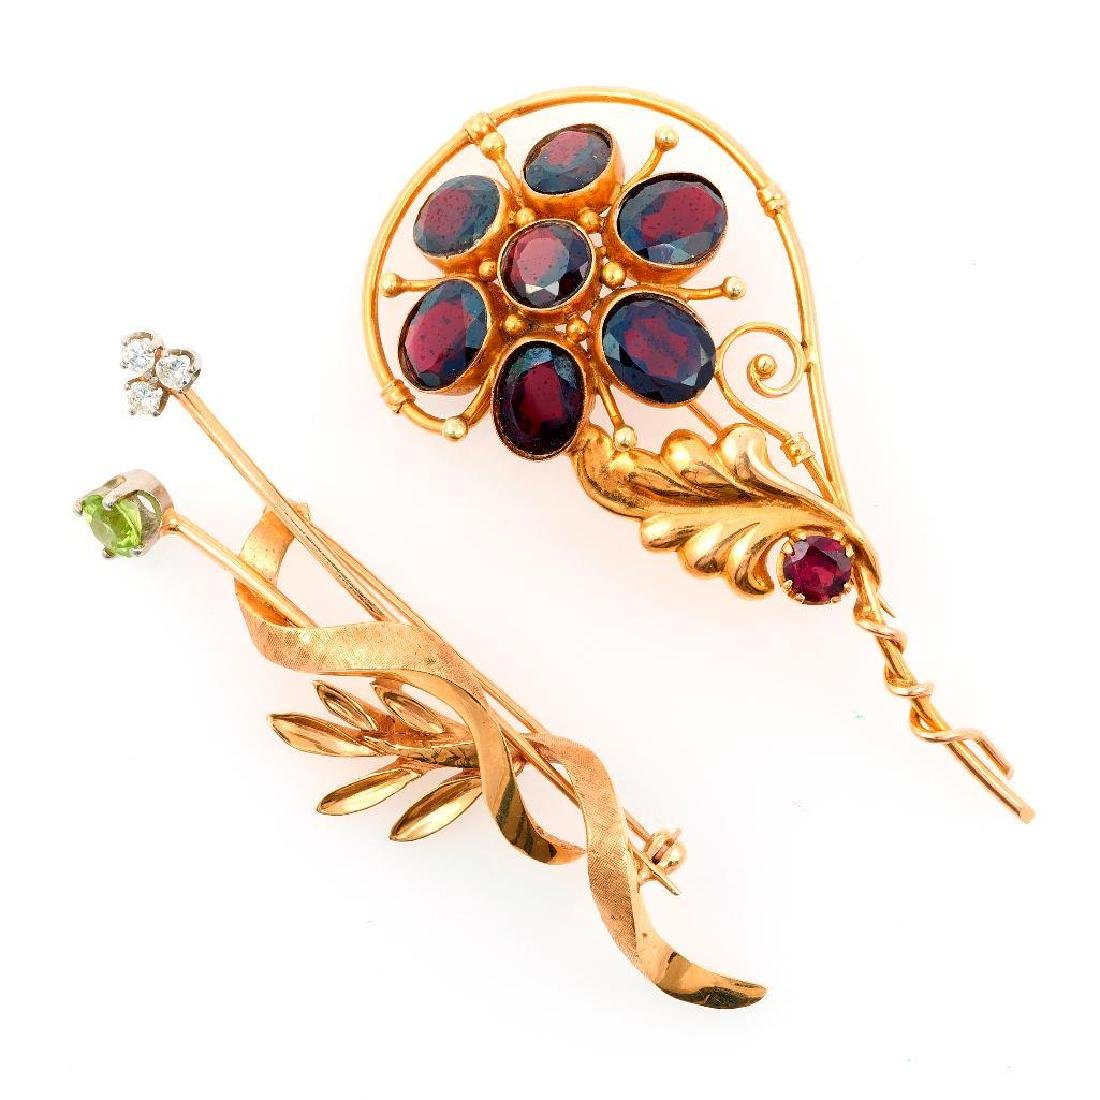 Two gem-set and 14k gold brooches